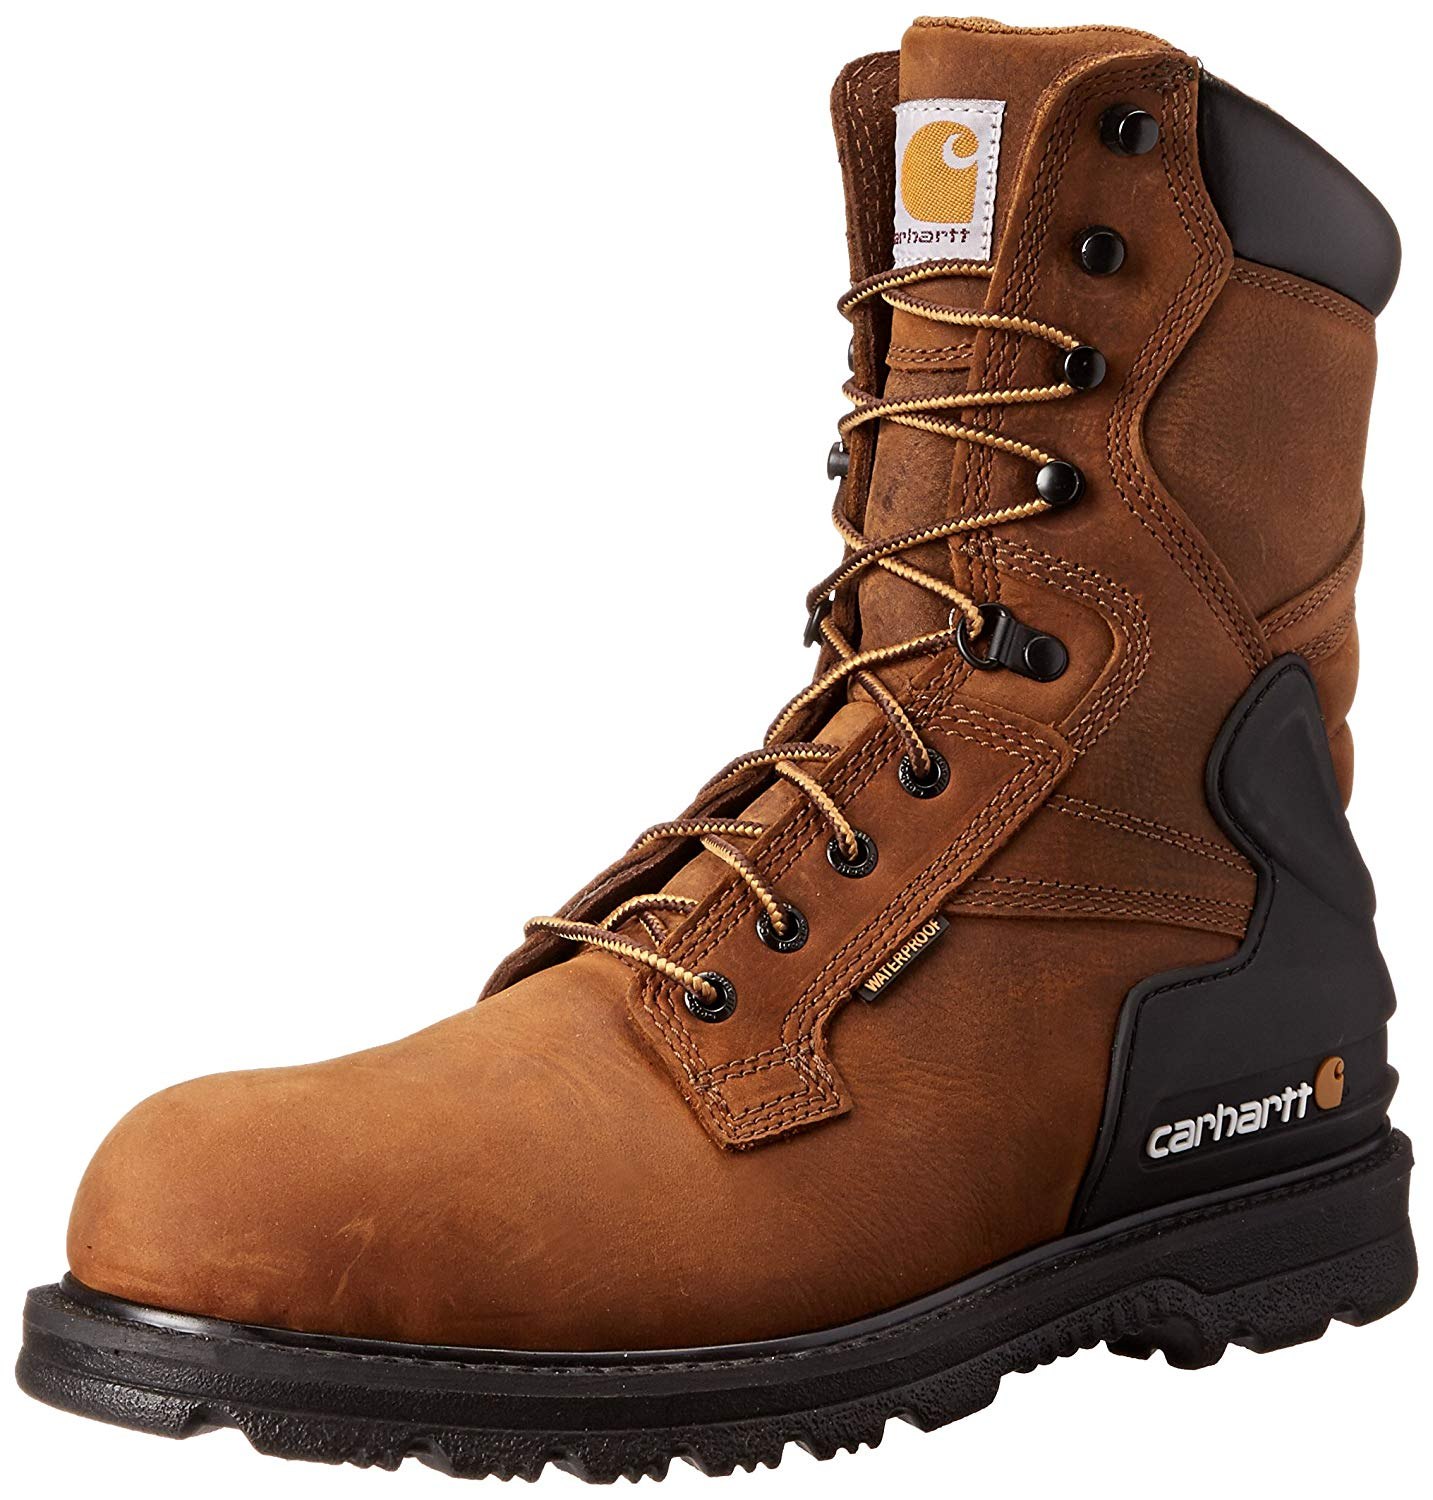 a27391105f9 Details about Carhartt Mens 8 inch Closed Toe Mid-Calf Cold Weather Boots,  Brown, Size 11.5 Ja